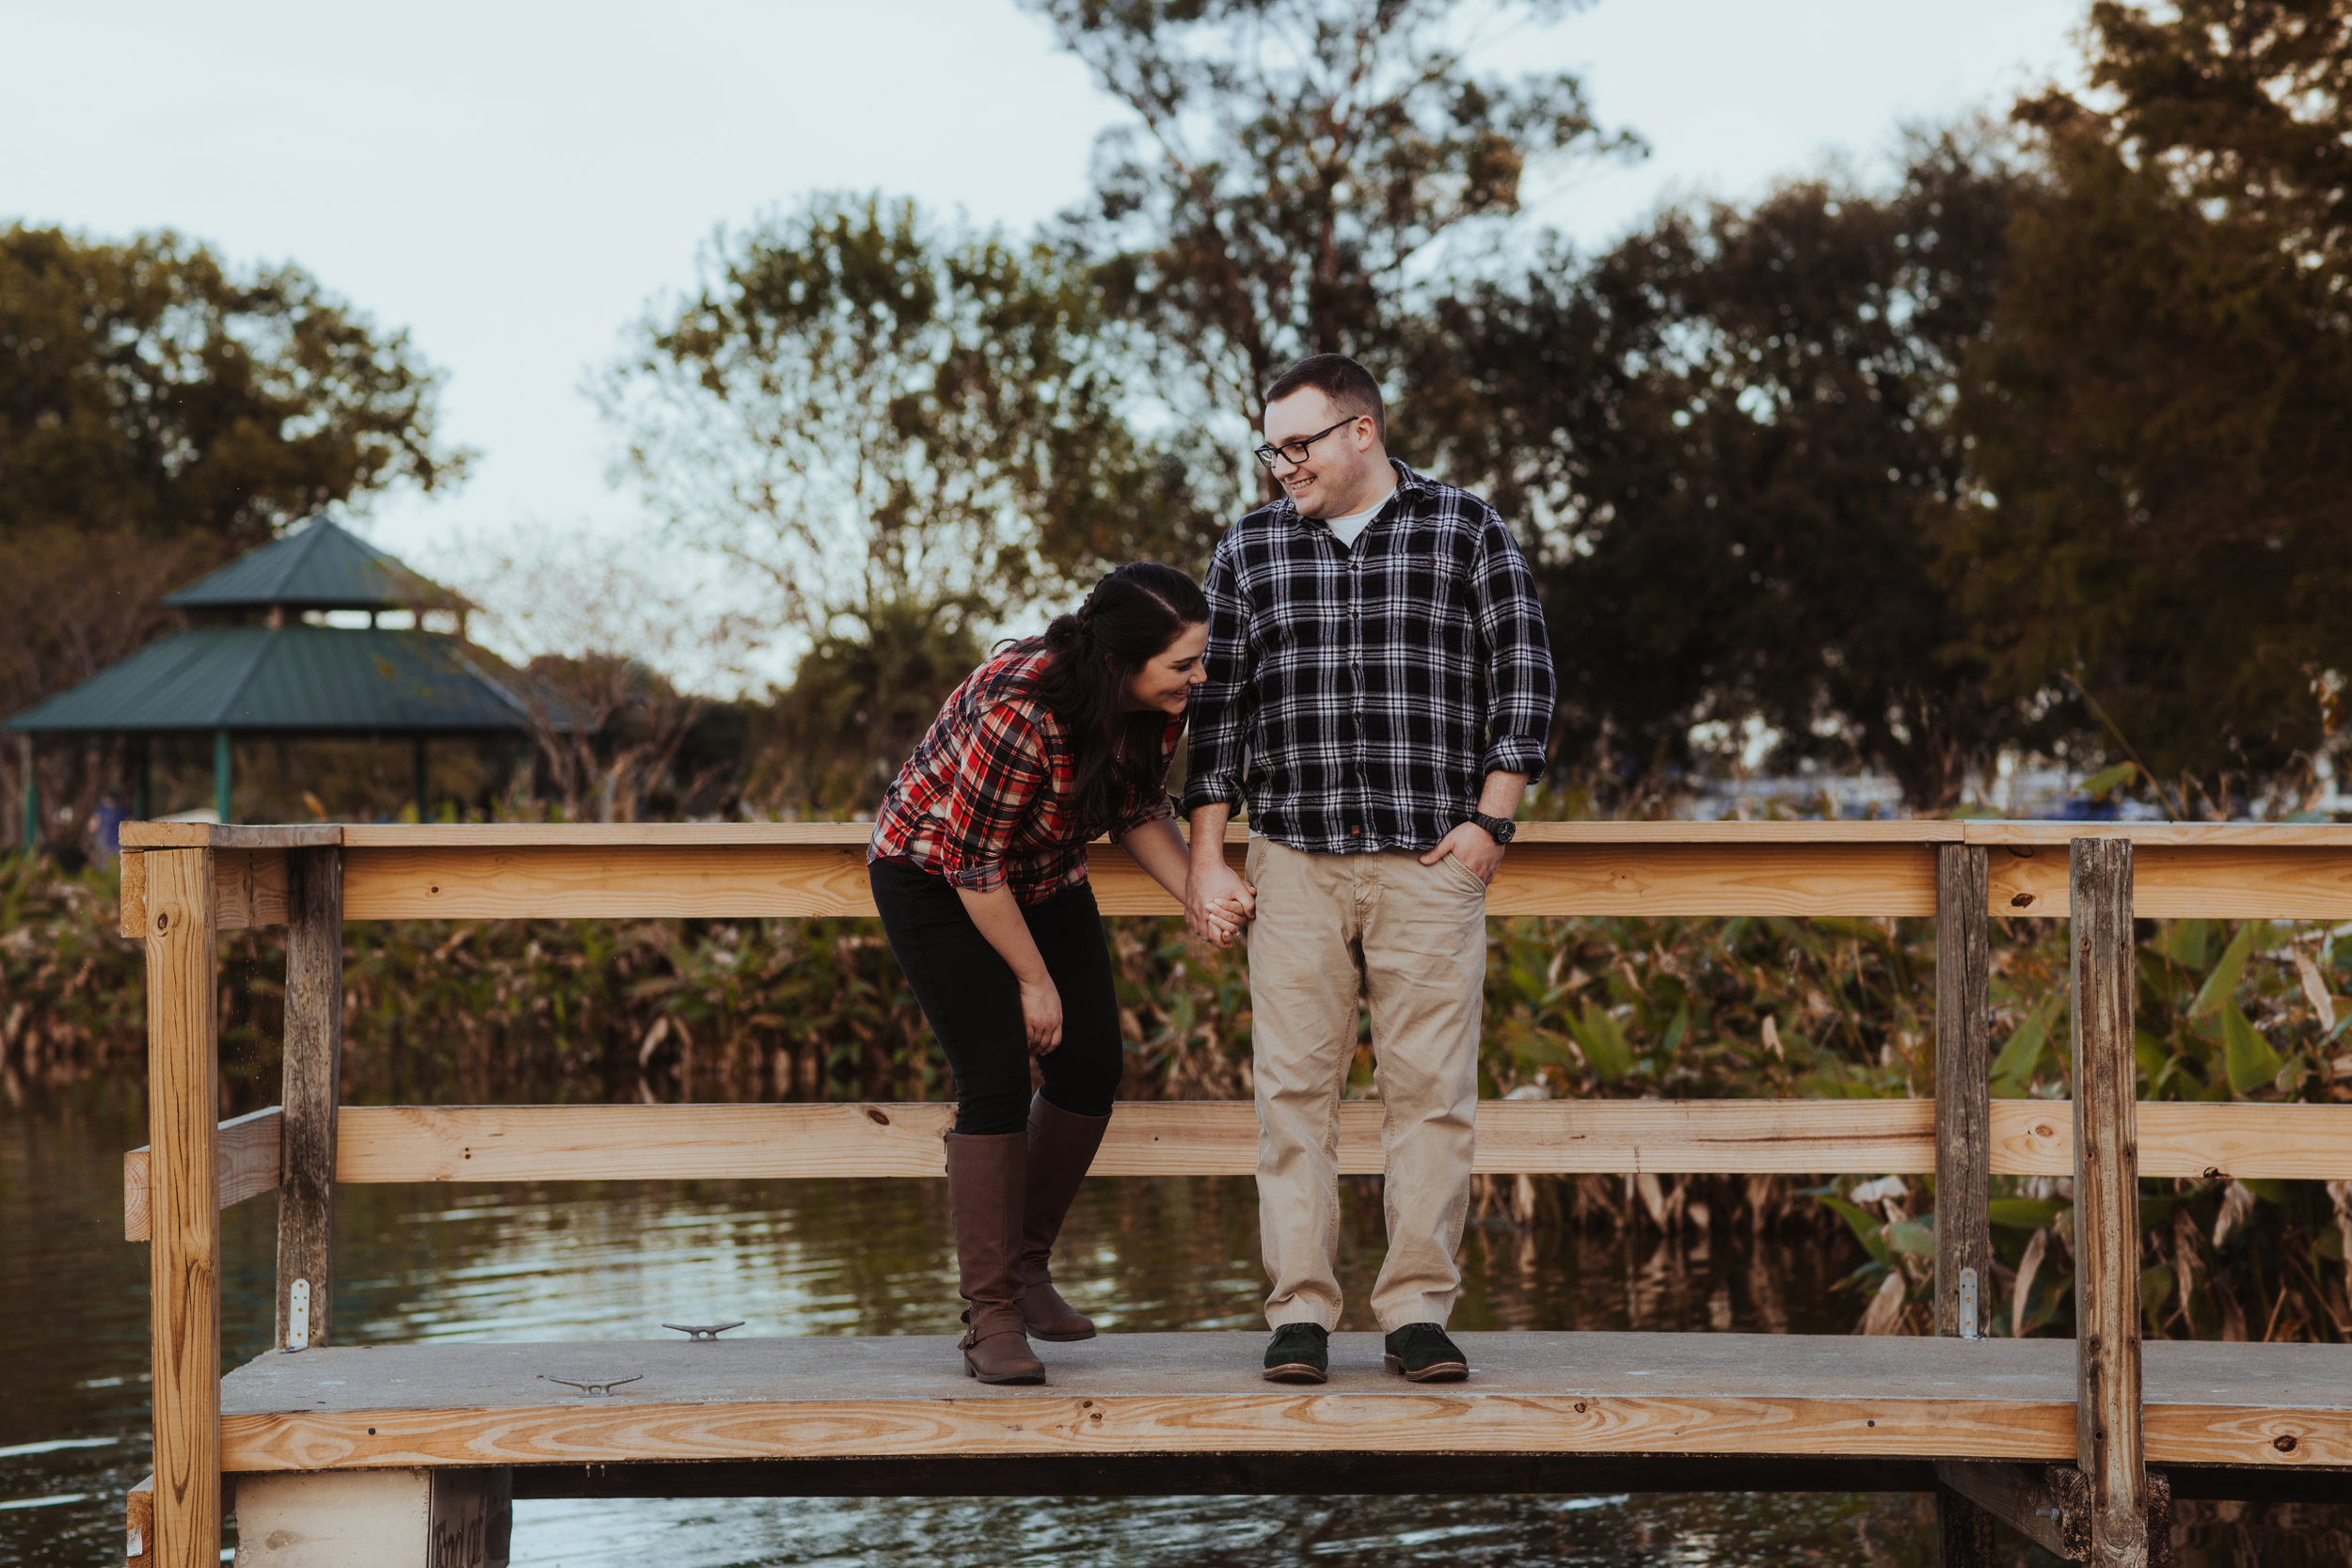 Engagement Session | Vanessa Boy |Vanessaboy.com | orlando,fl-172.com |final.jpg